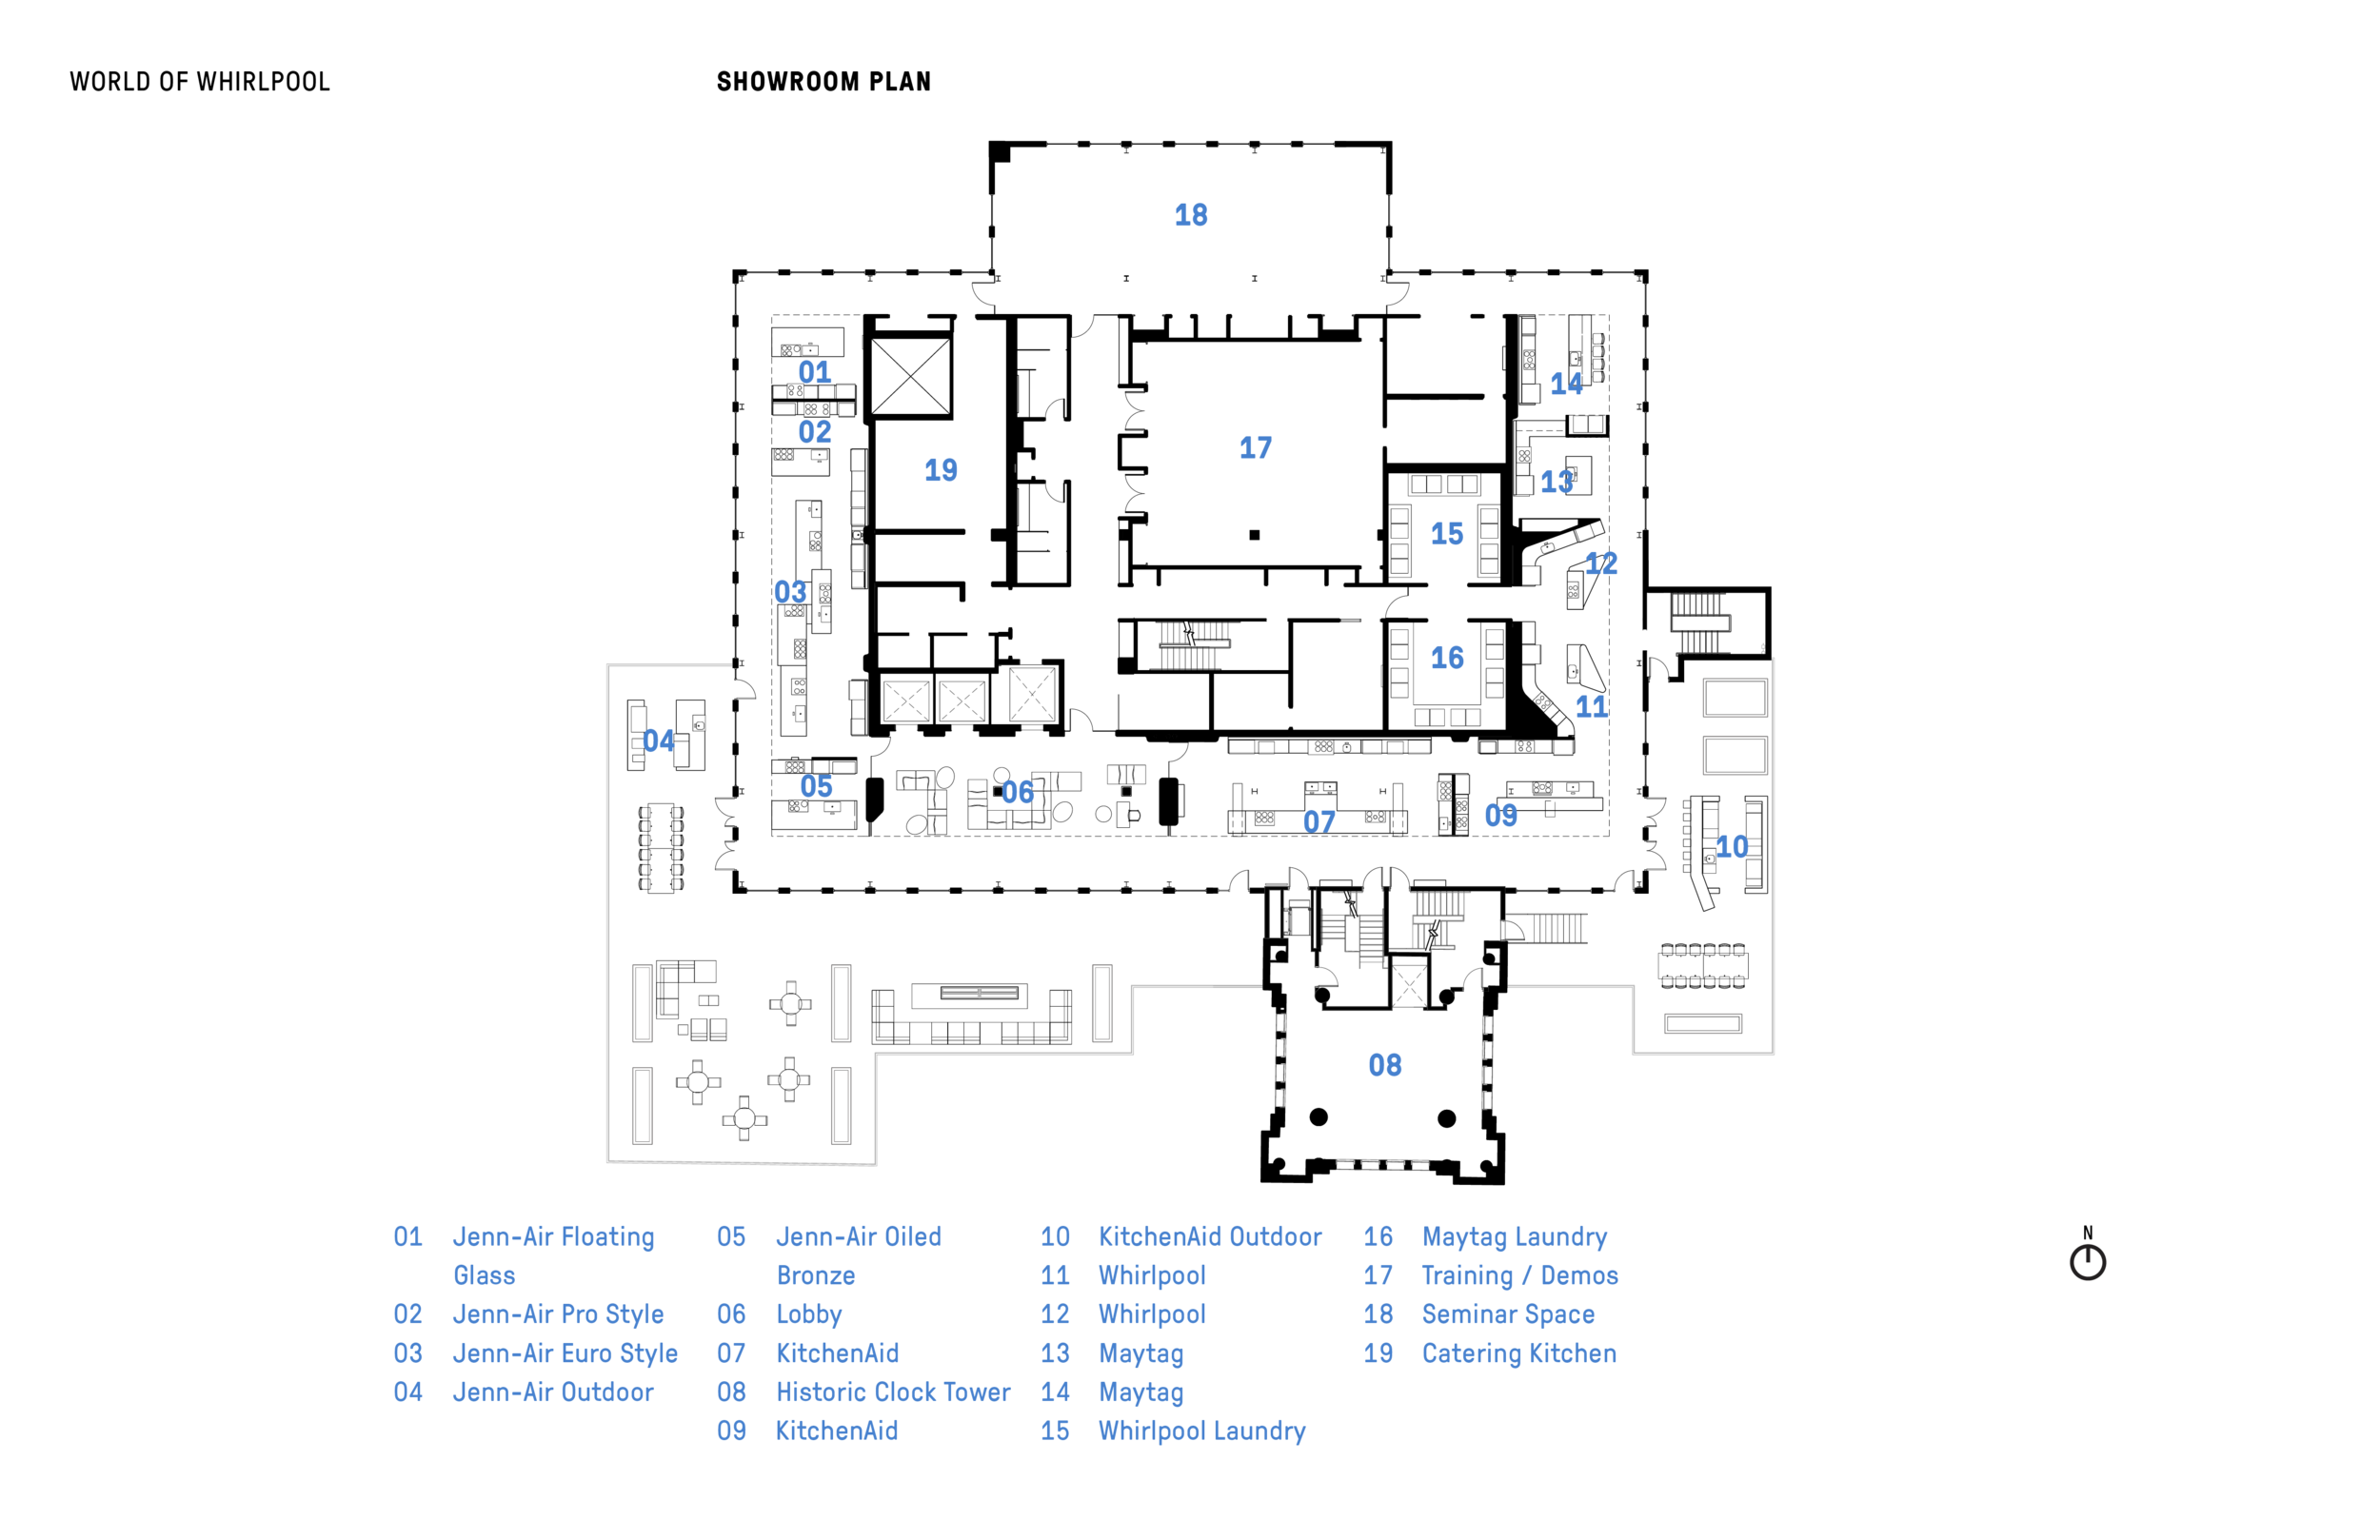 World_of_Whirlpool_plans-elevations.png